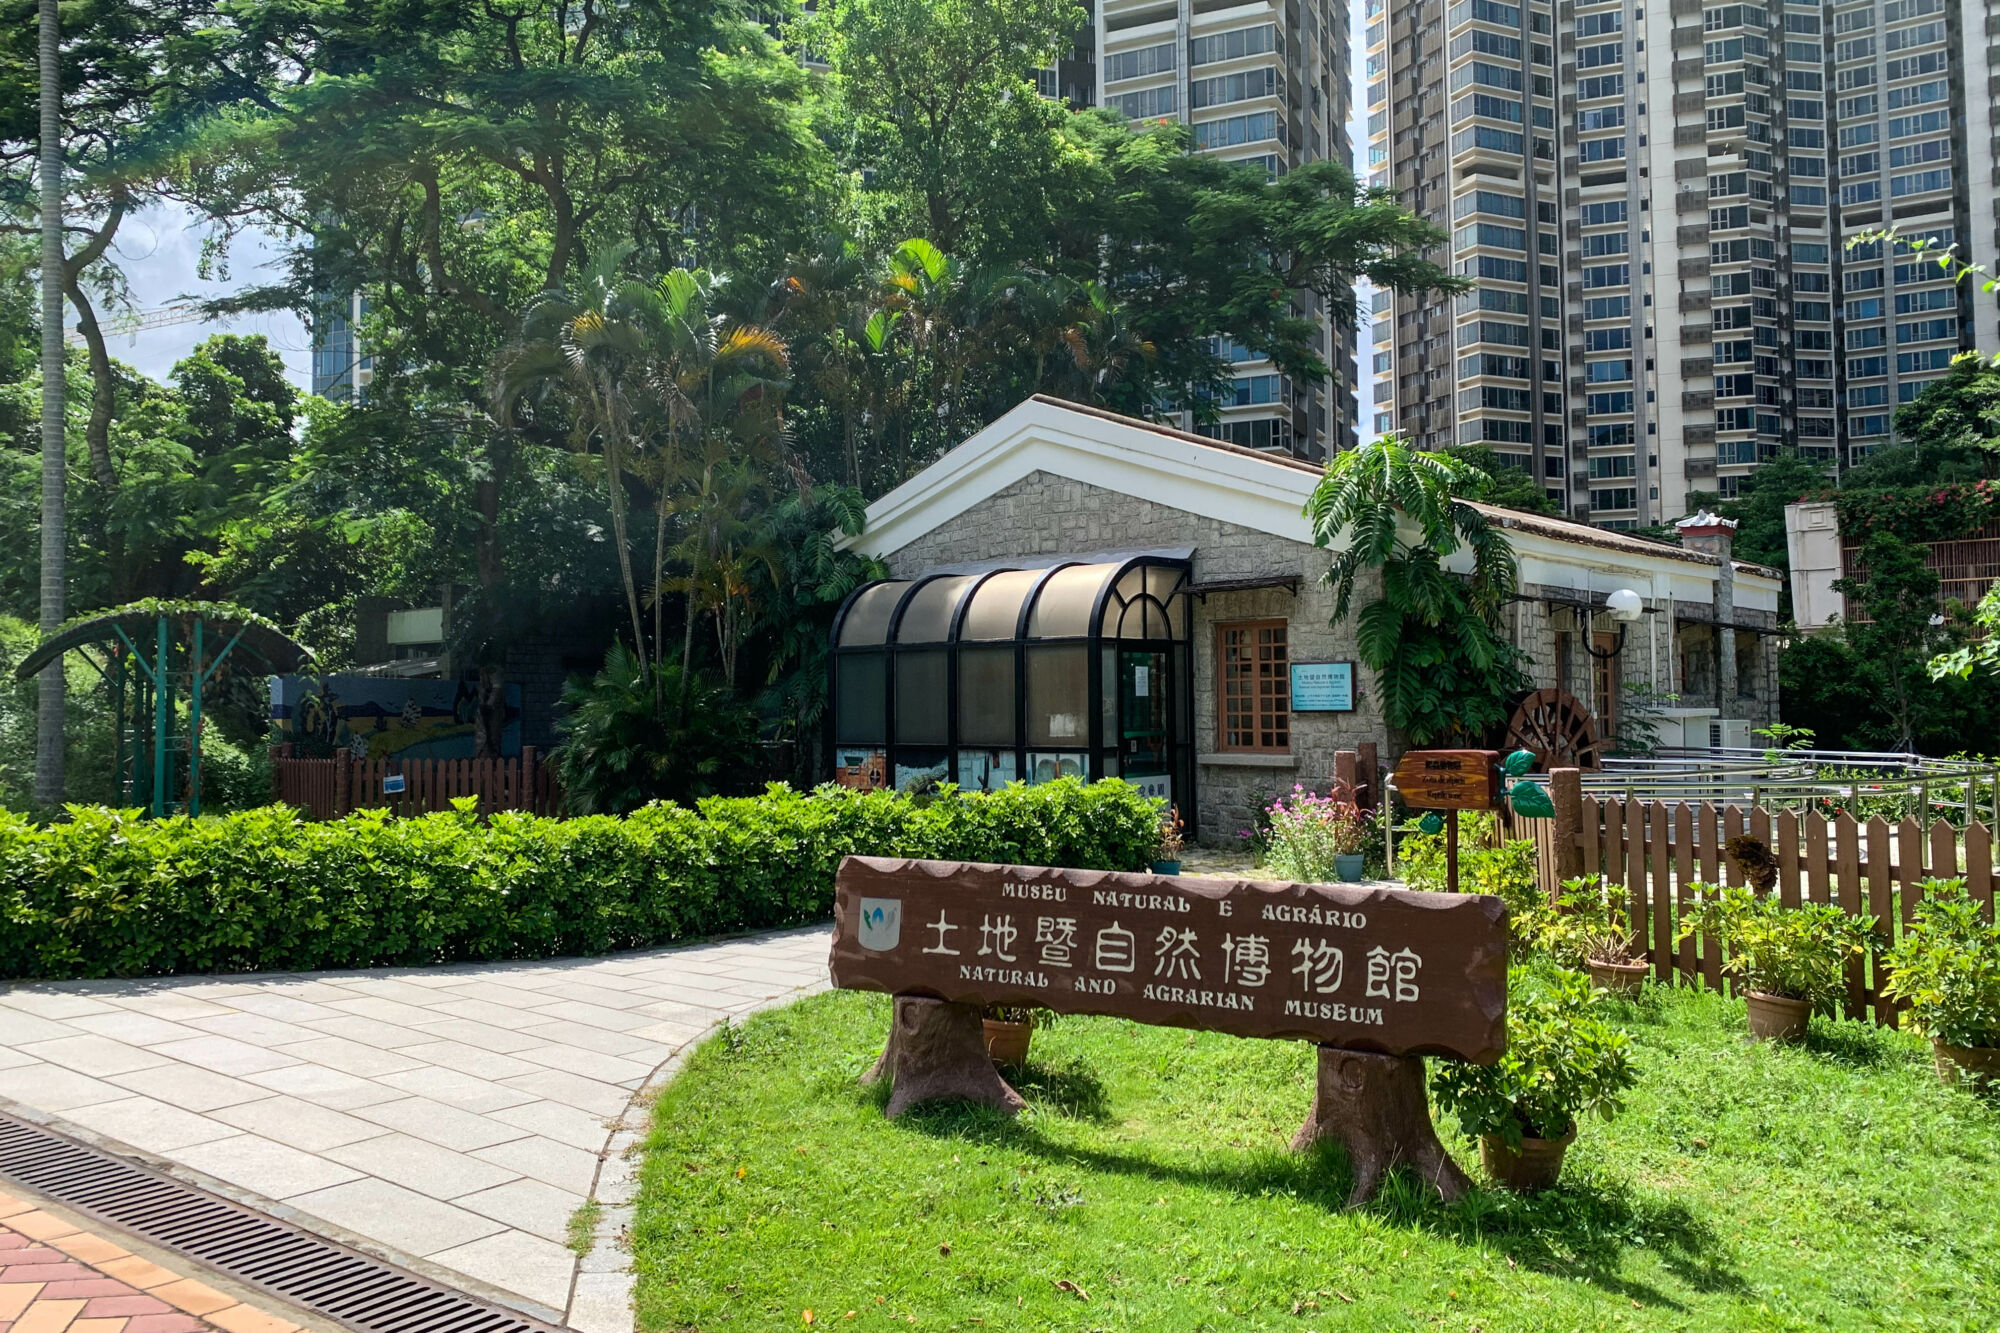 Natural and Agrarian Museum Outdoor Entrance Macau Lifestyle